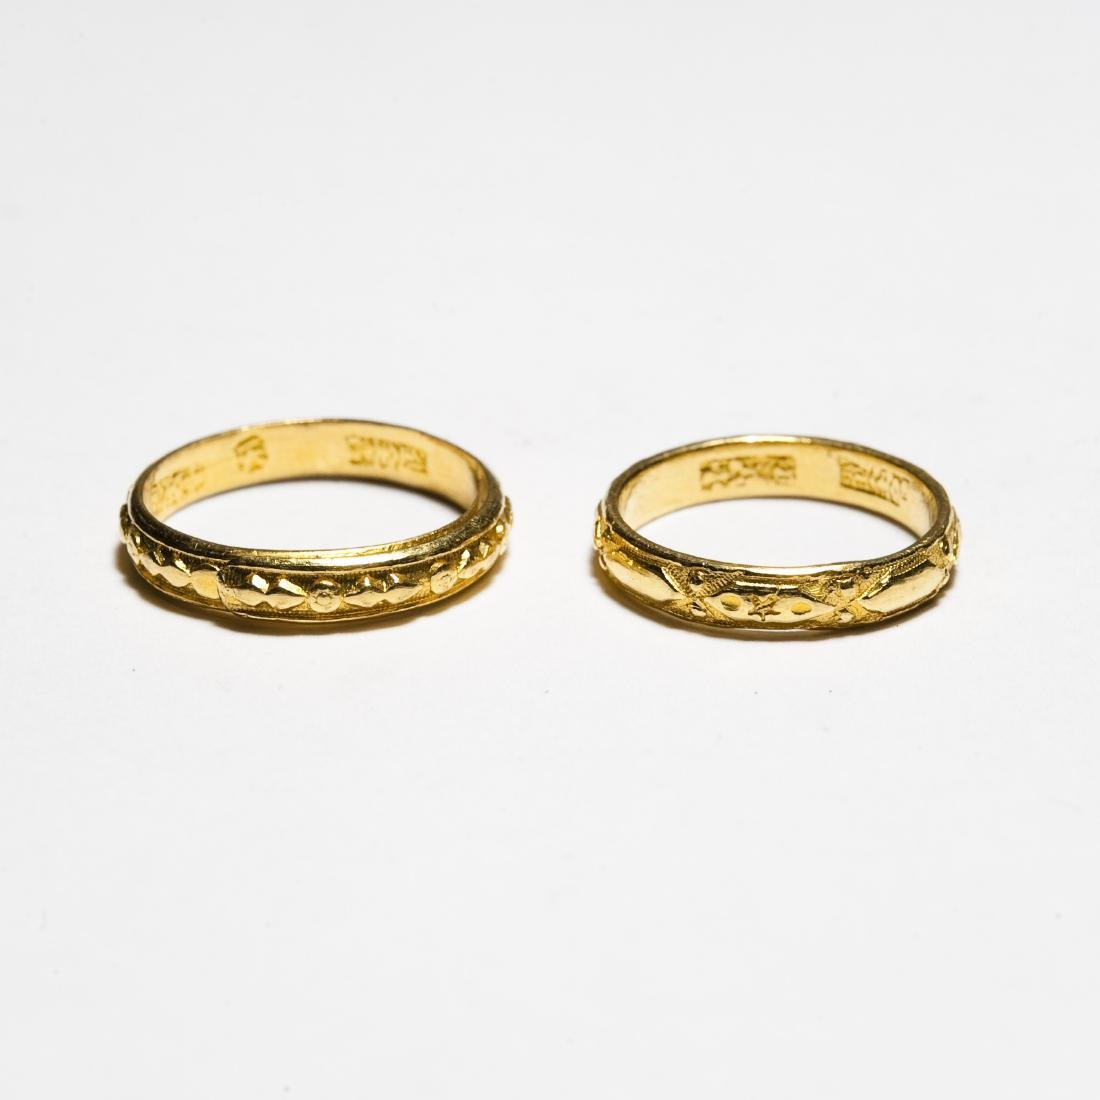 (2) Chinese Gold Bands. - 2